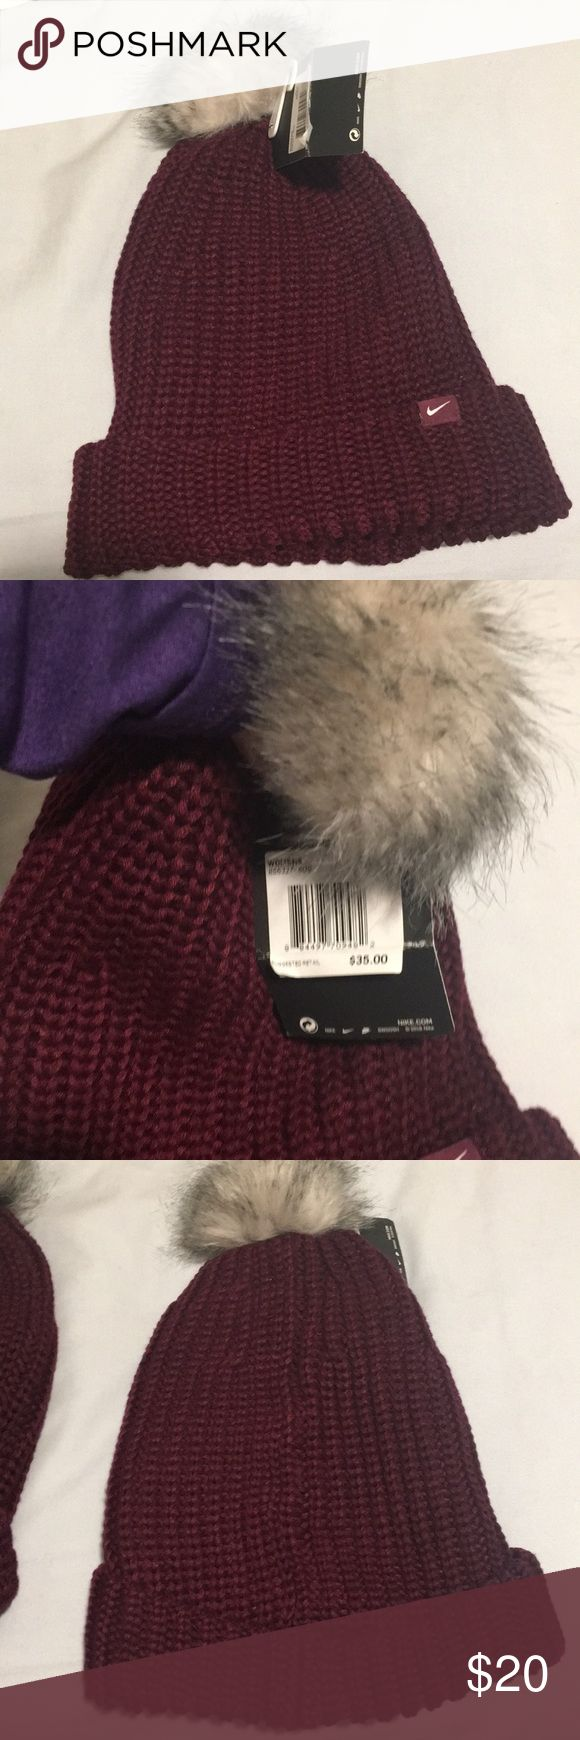 Brand New Nike Beanies Two maroon beanies with puffball on top. One still with tag on it never been worn. One worn once but no serious signs of being worn. Originally 35$ given at a raffle and do not need. Nike Accessories Hats